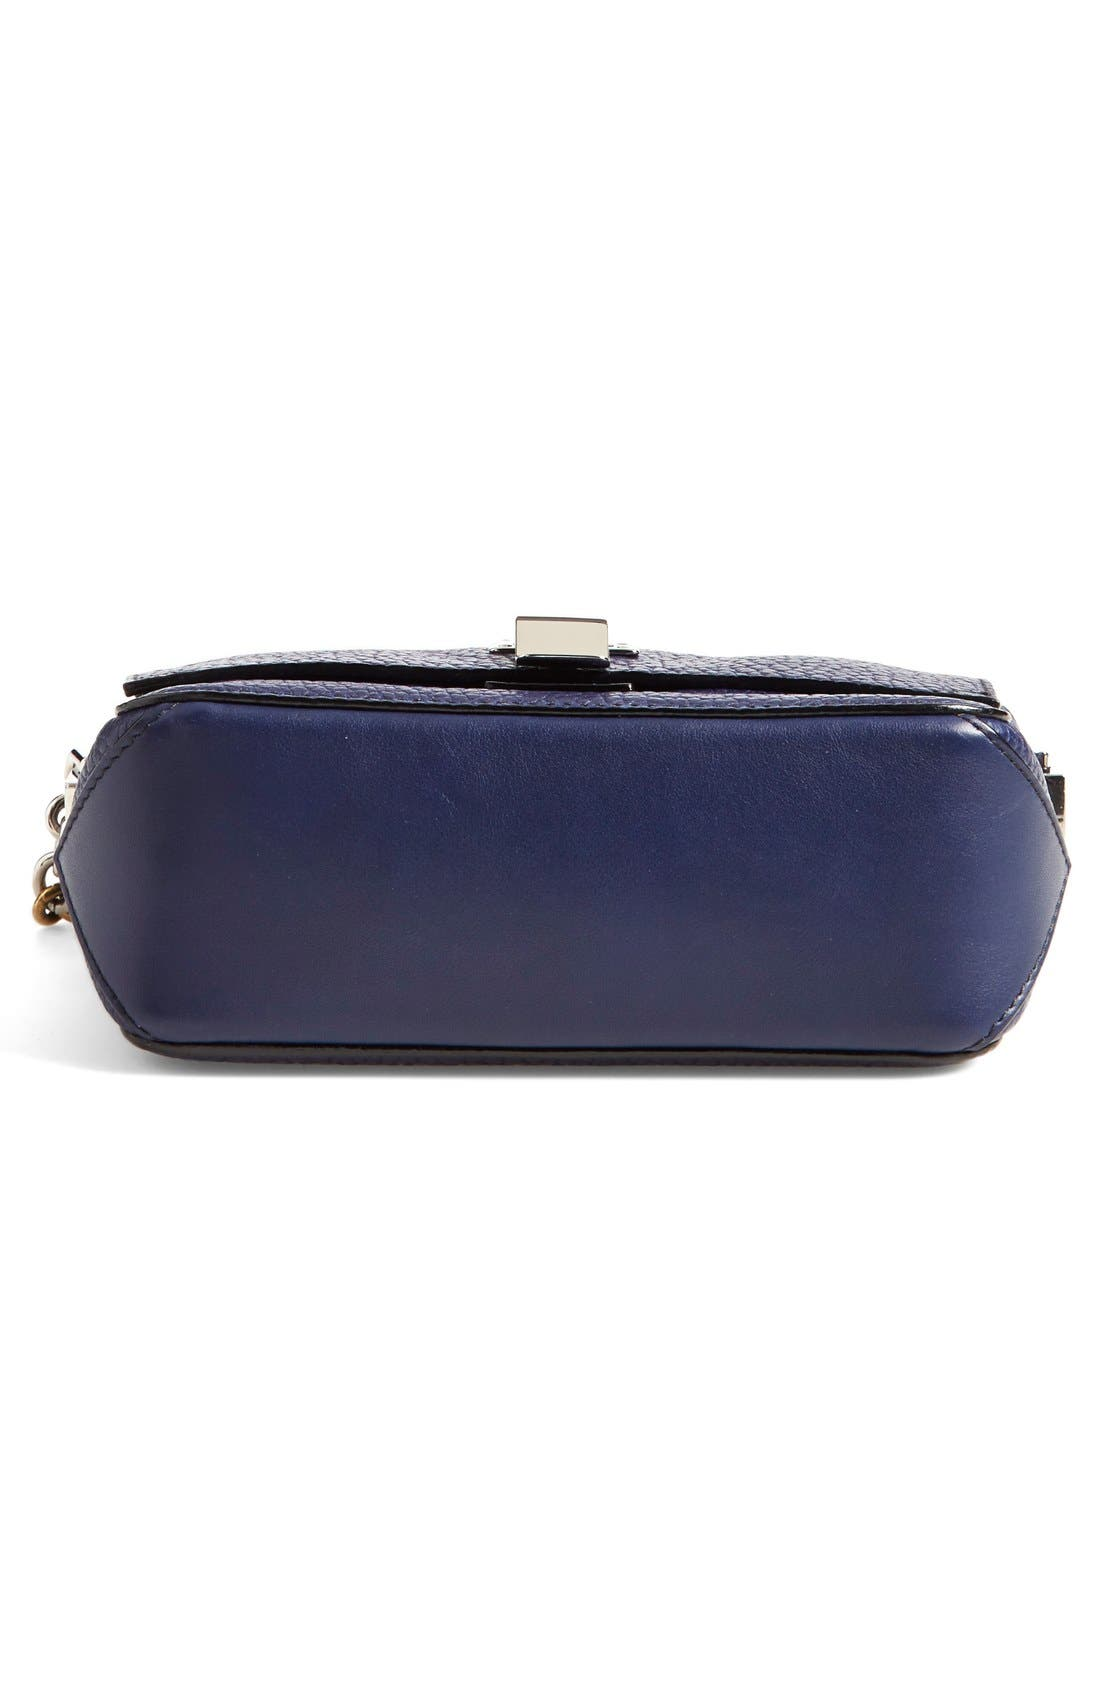 Alternate Image 3  - Proenza Schouler 'Small Courier' Pebbled Leather Crossbody Bag